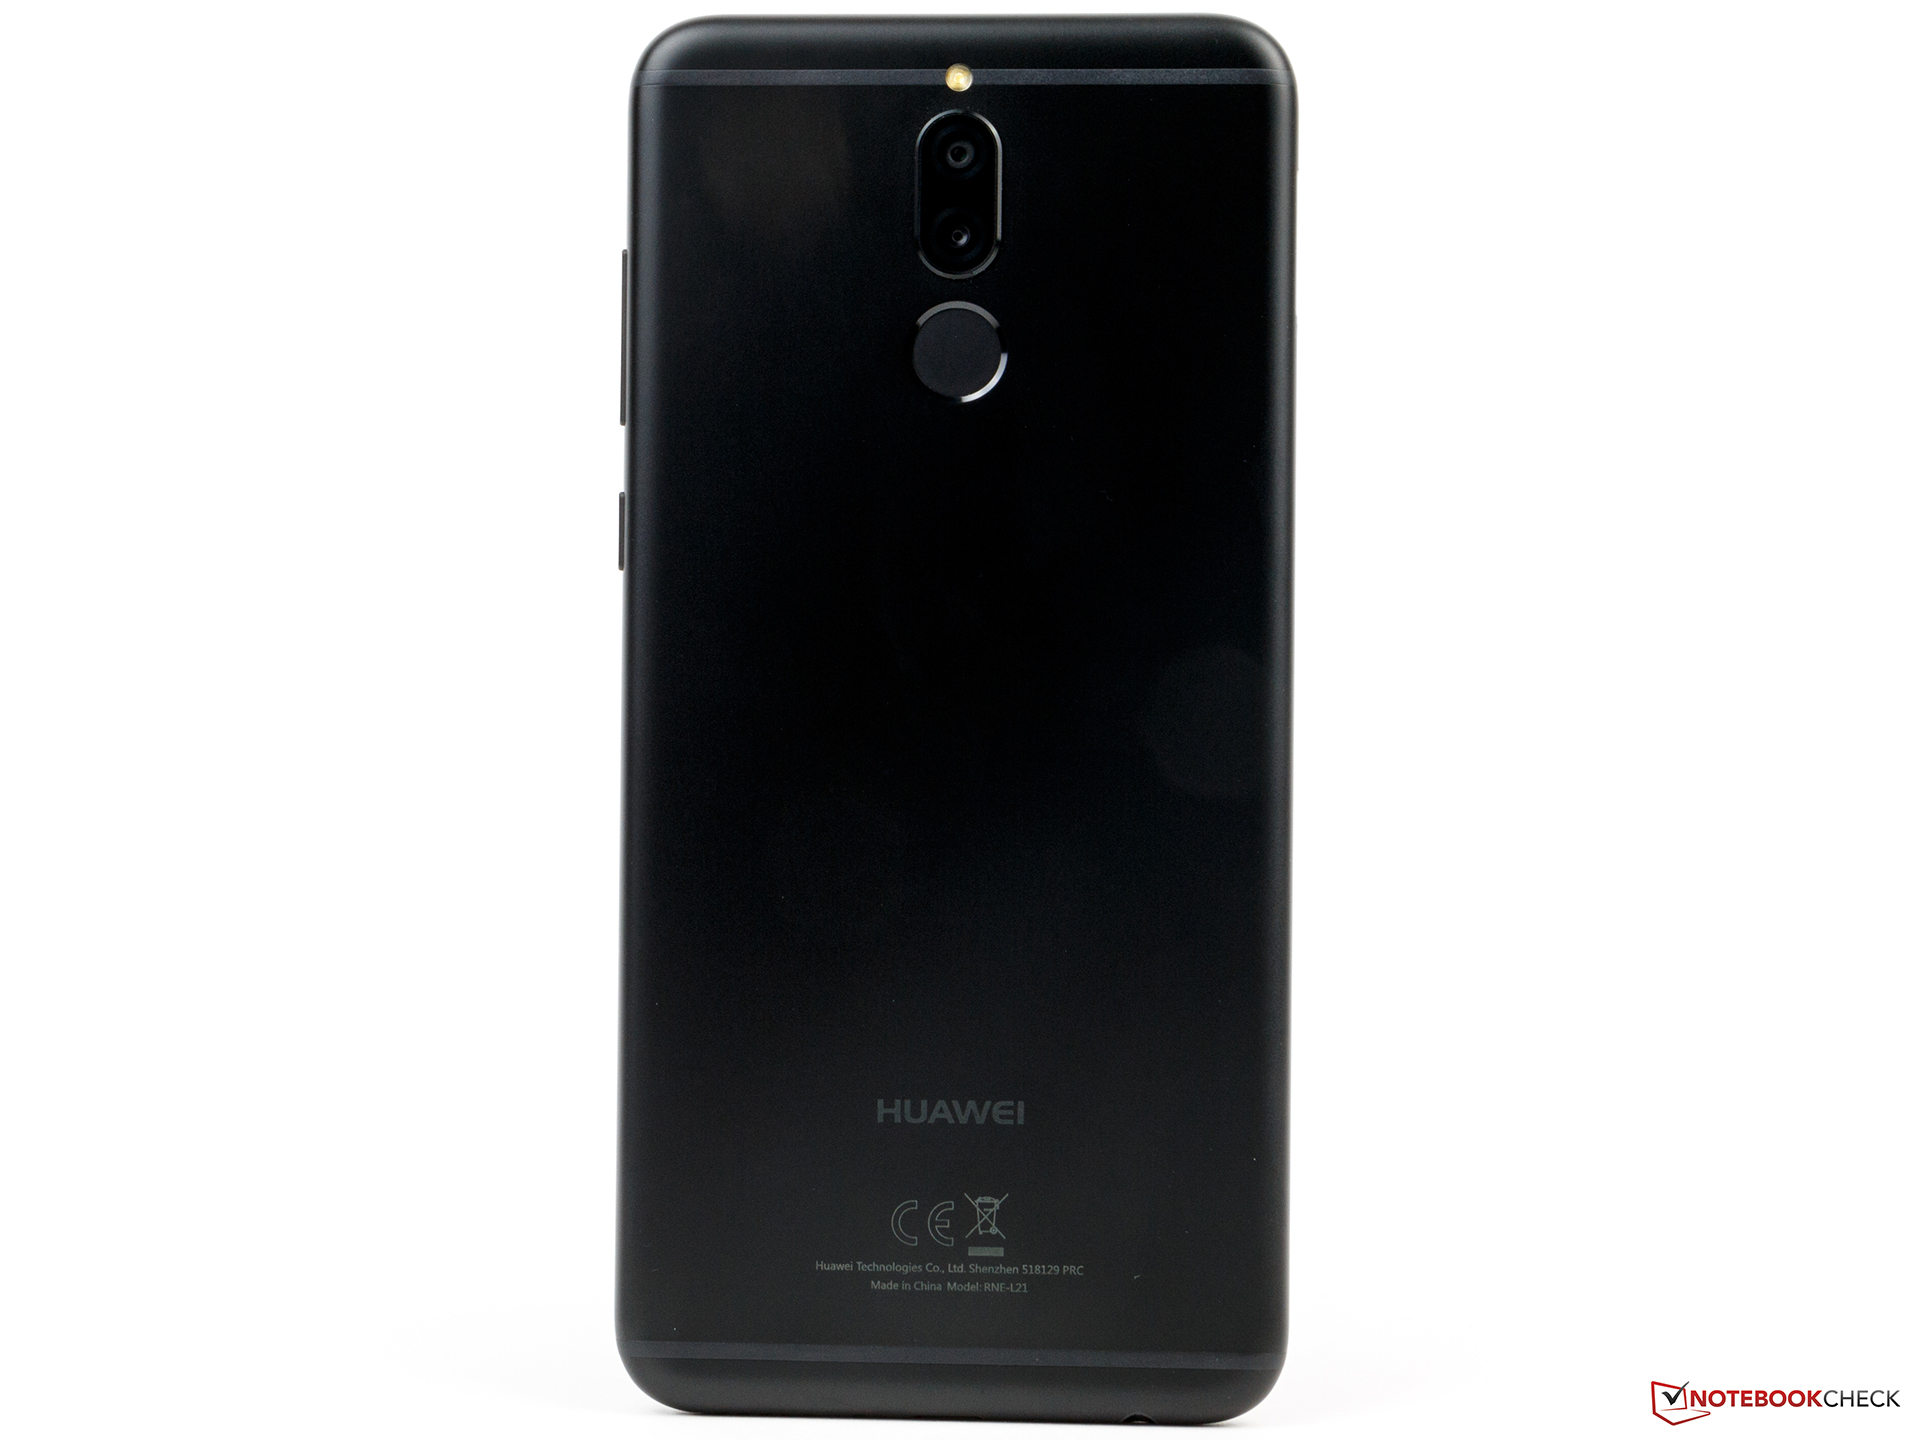 Courte Critique Du Smartphone Huawei Mate 10 Lite Notebookcheckfr